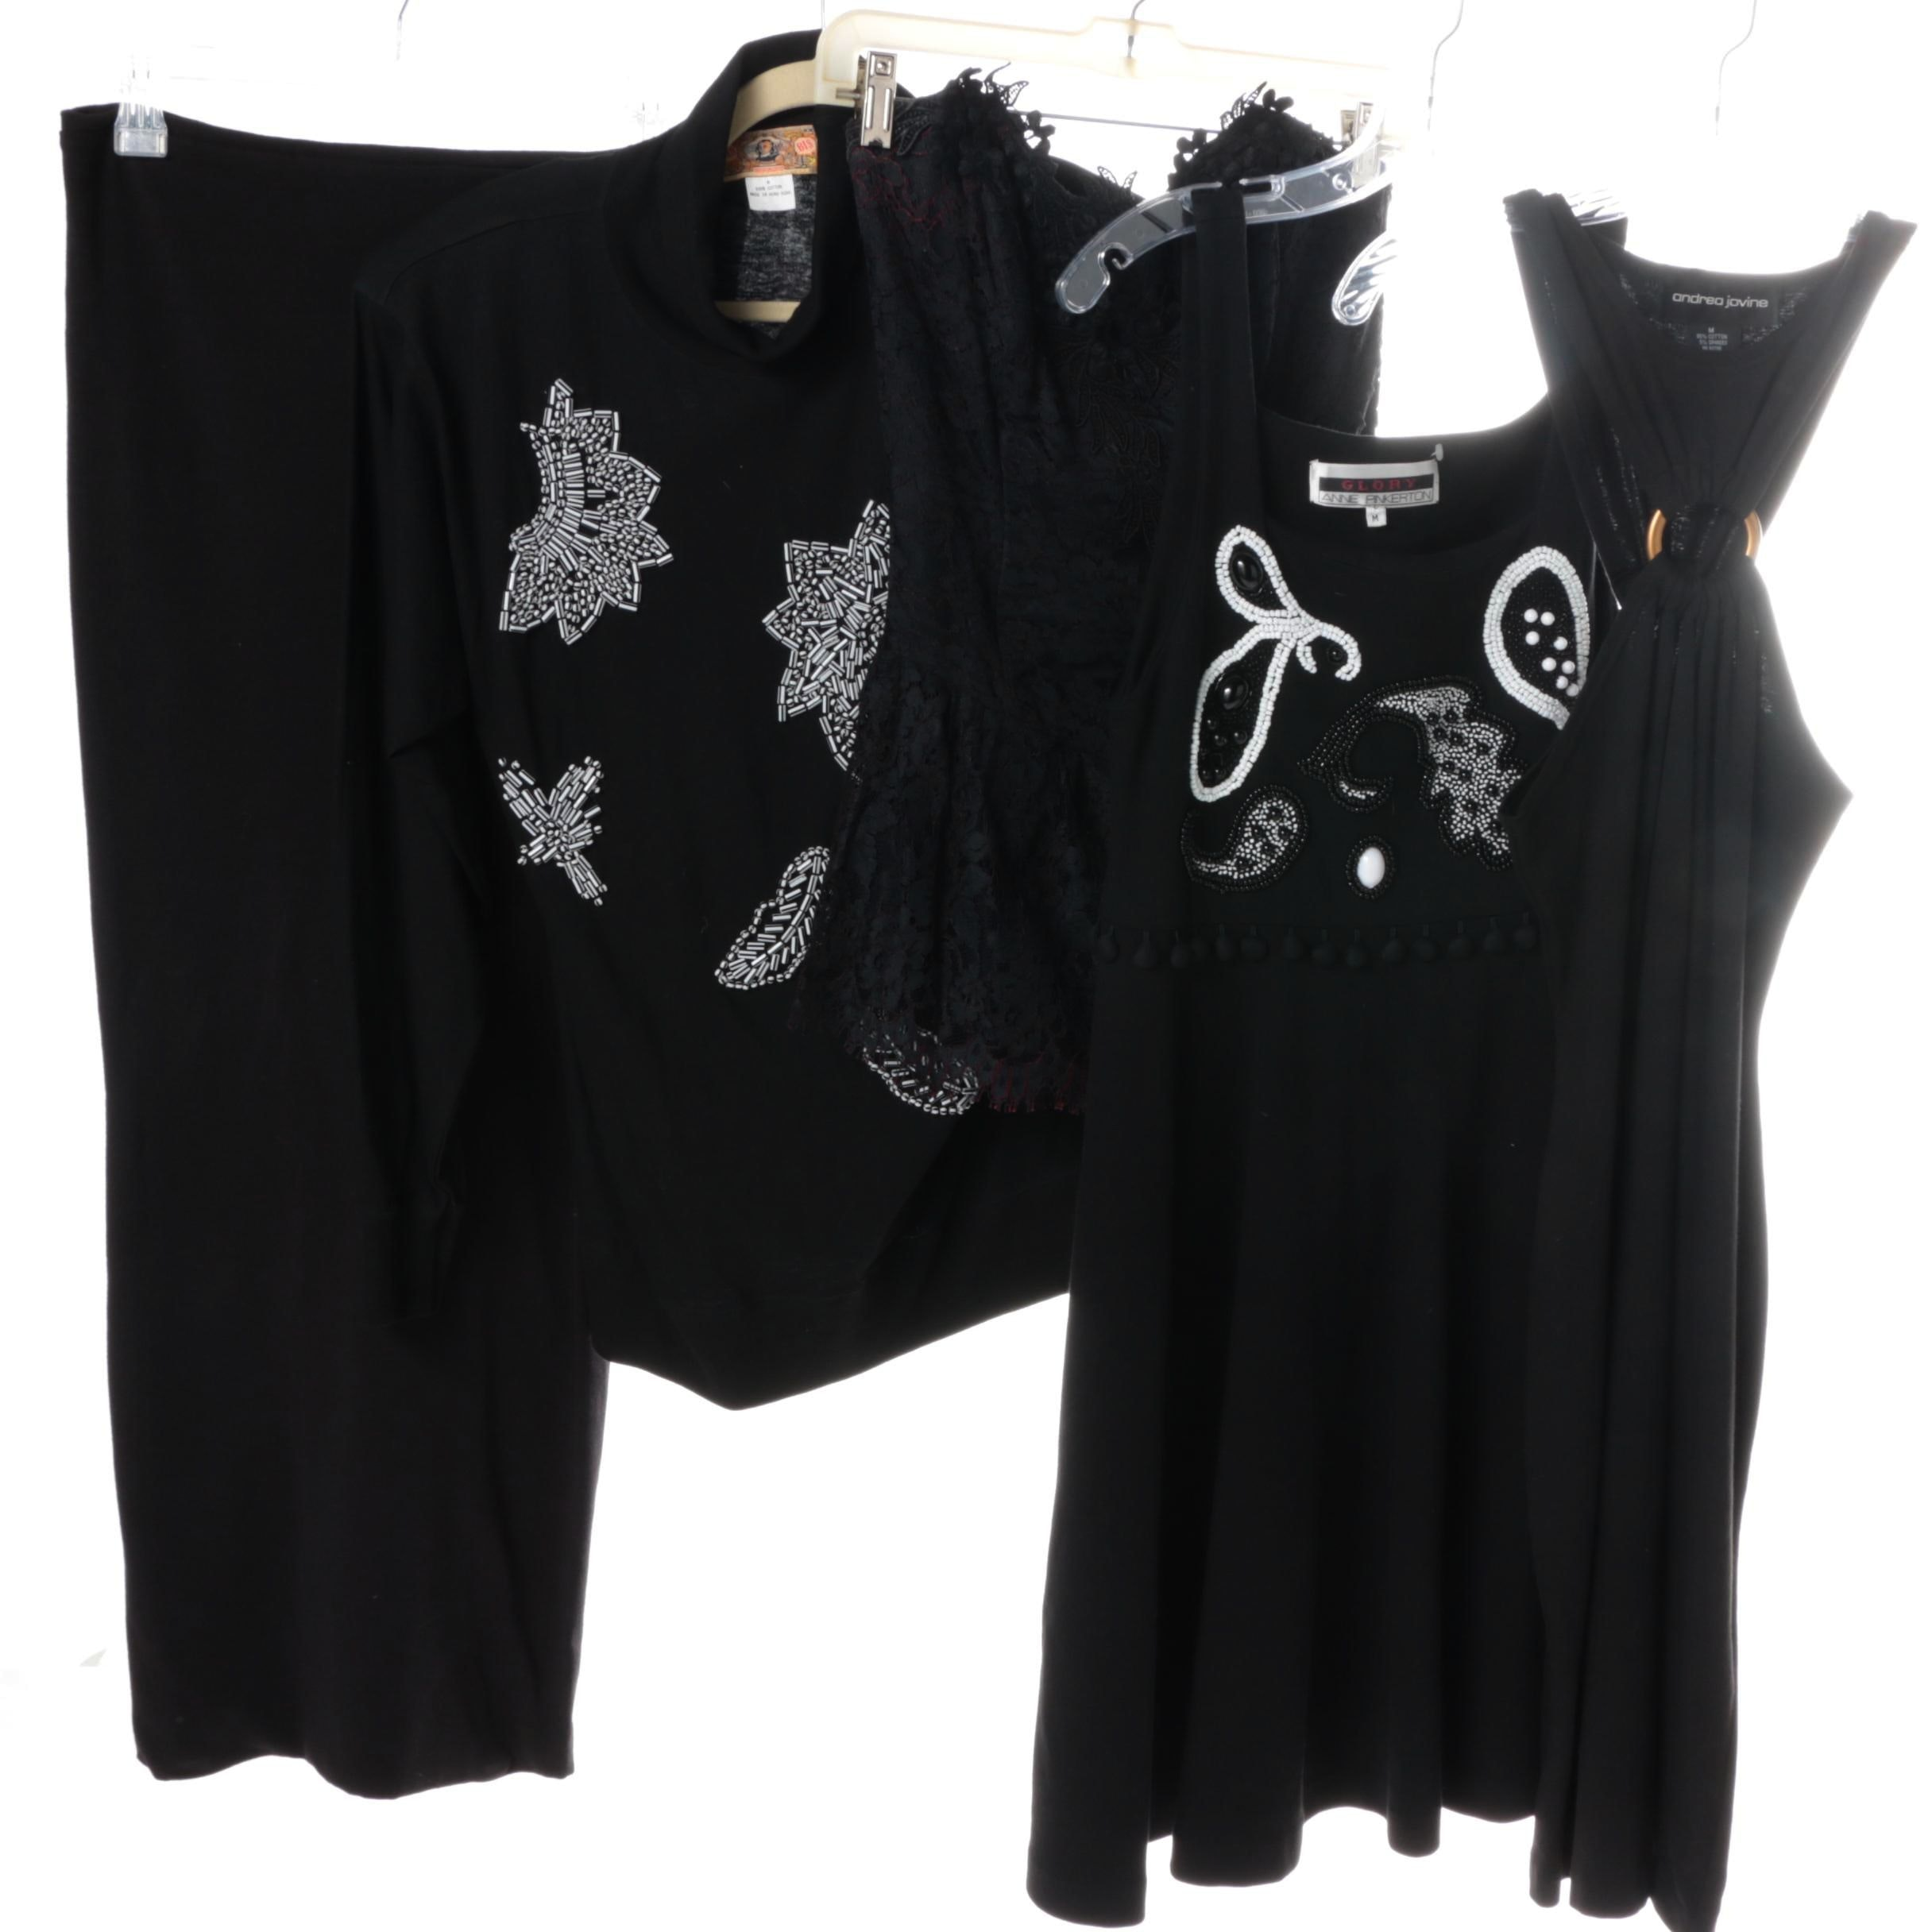 Selection of Women's Black Dresses and Shirt